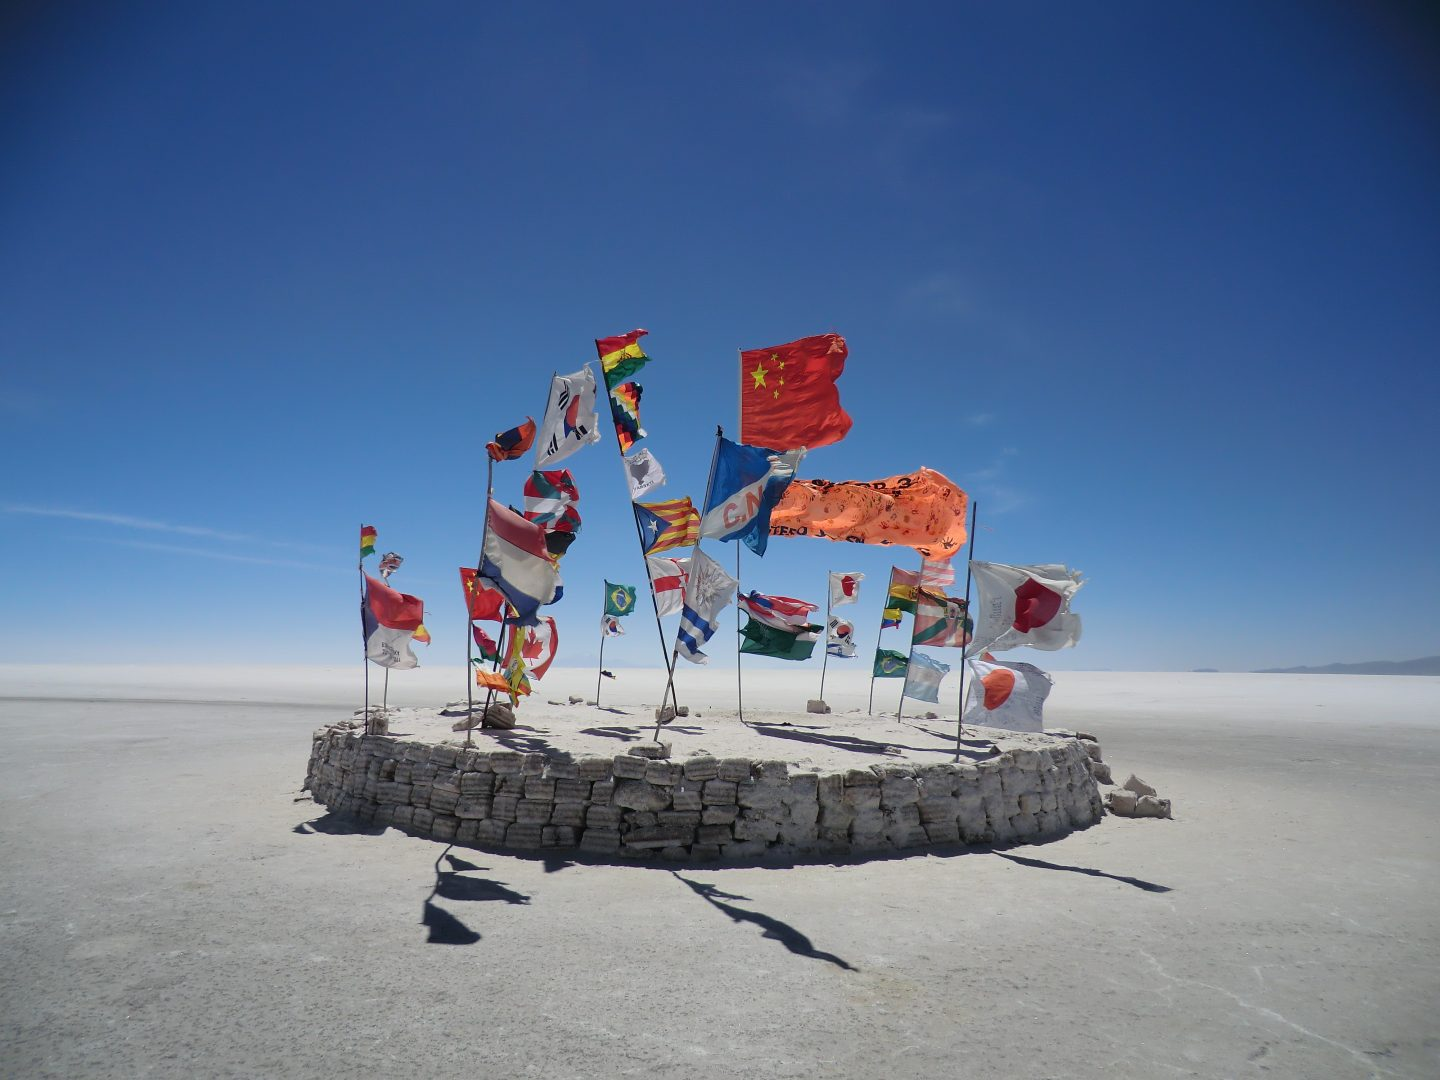 A round wall in the middle of the dessert holds up many flags of different countries. nations, flags, culture, travel, dessert.